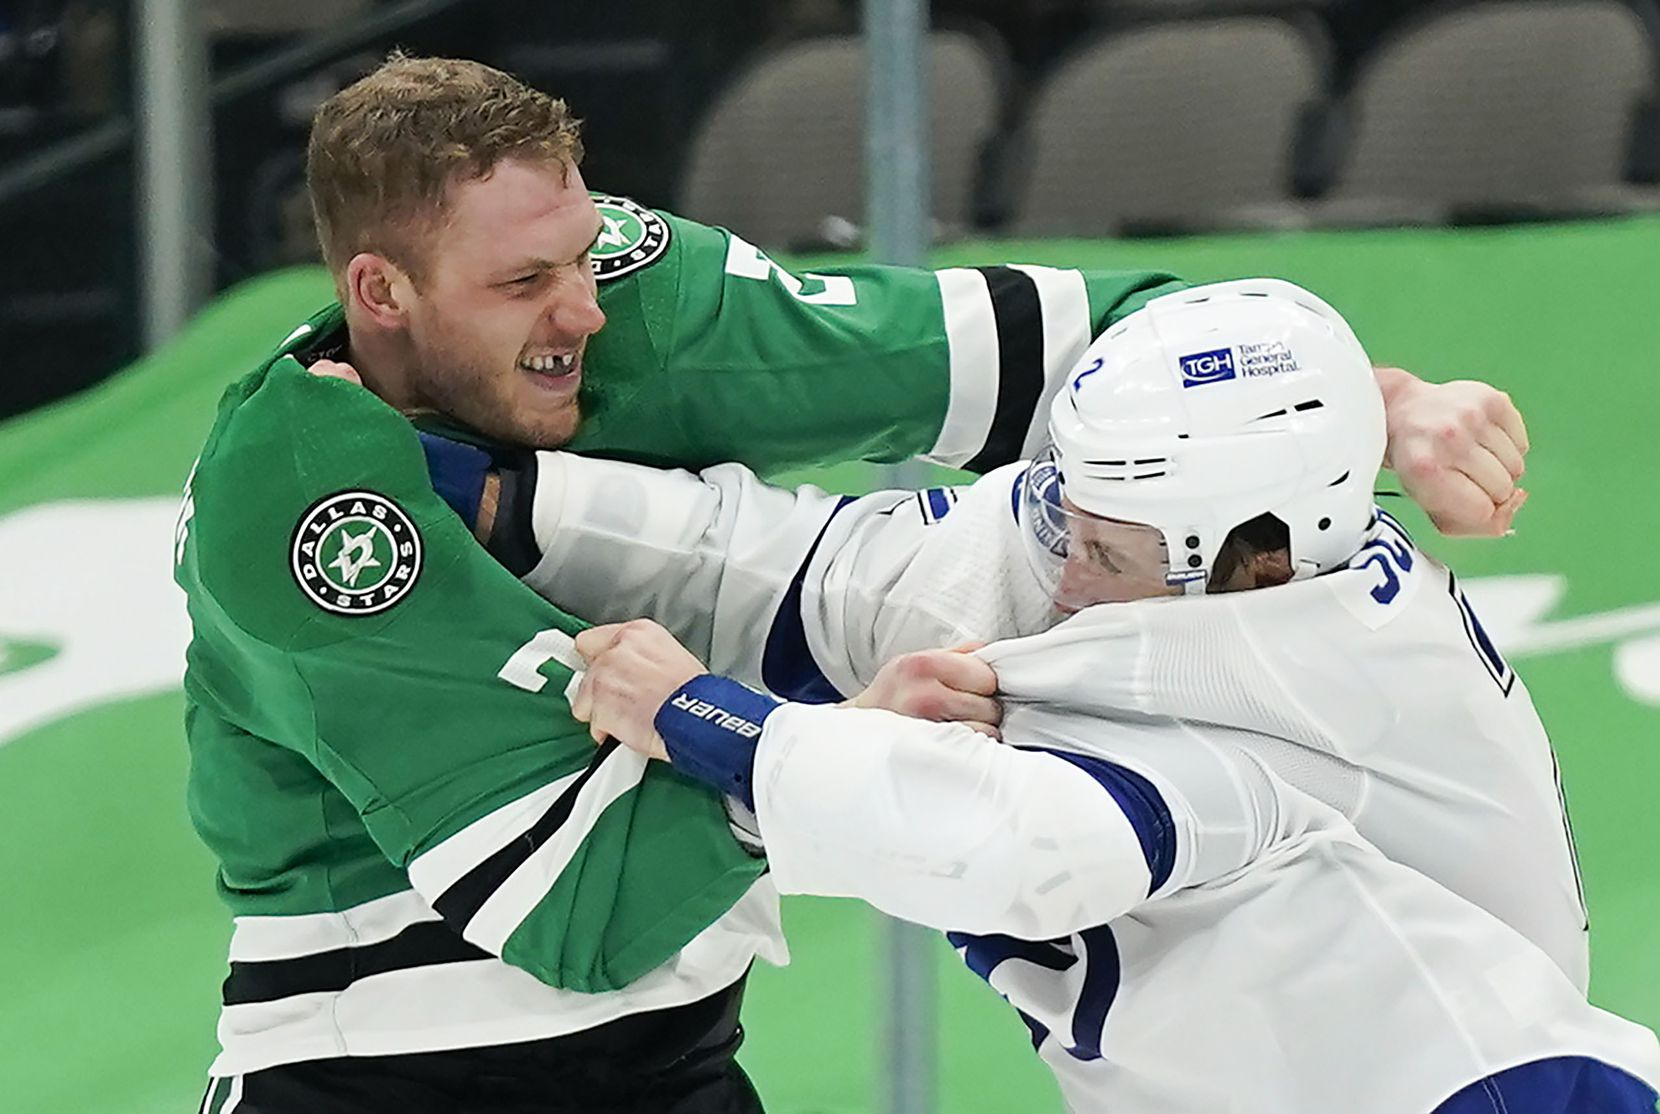 Dallas Stars defenseman Jamie Oleksiak (left) fights with Tampa Bay Lightning defenseman Luke Schenn during the second period of an NHL hockey game at the American Airlines Center on Thursday, March 25, 2021, in Dallas.